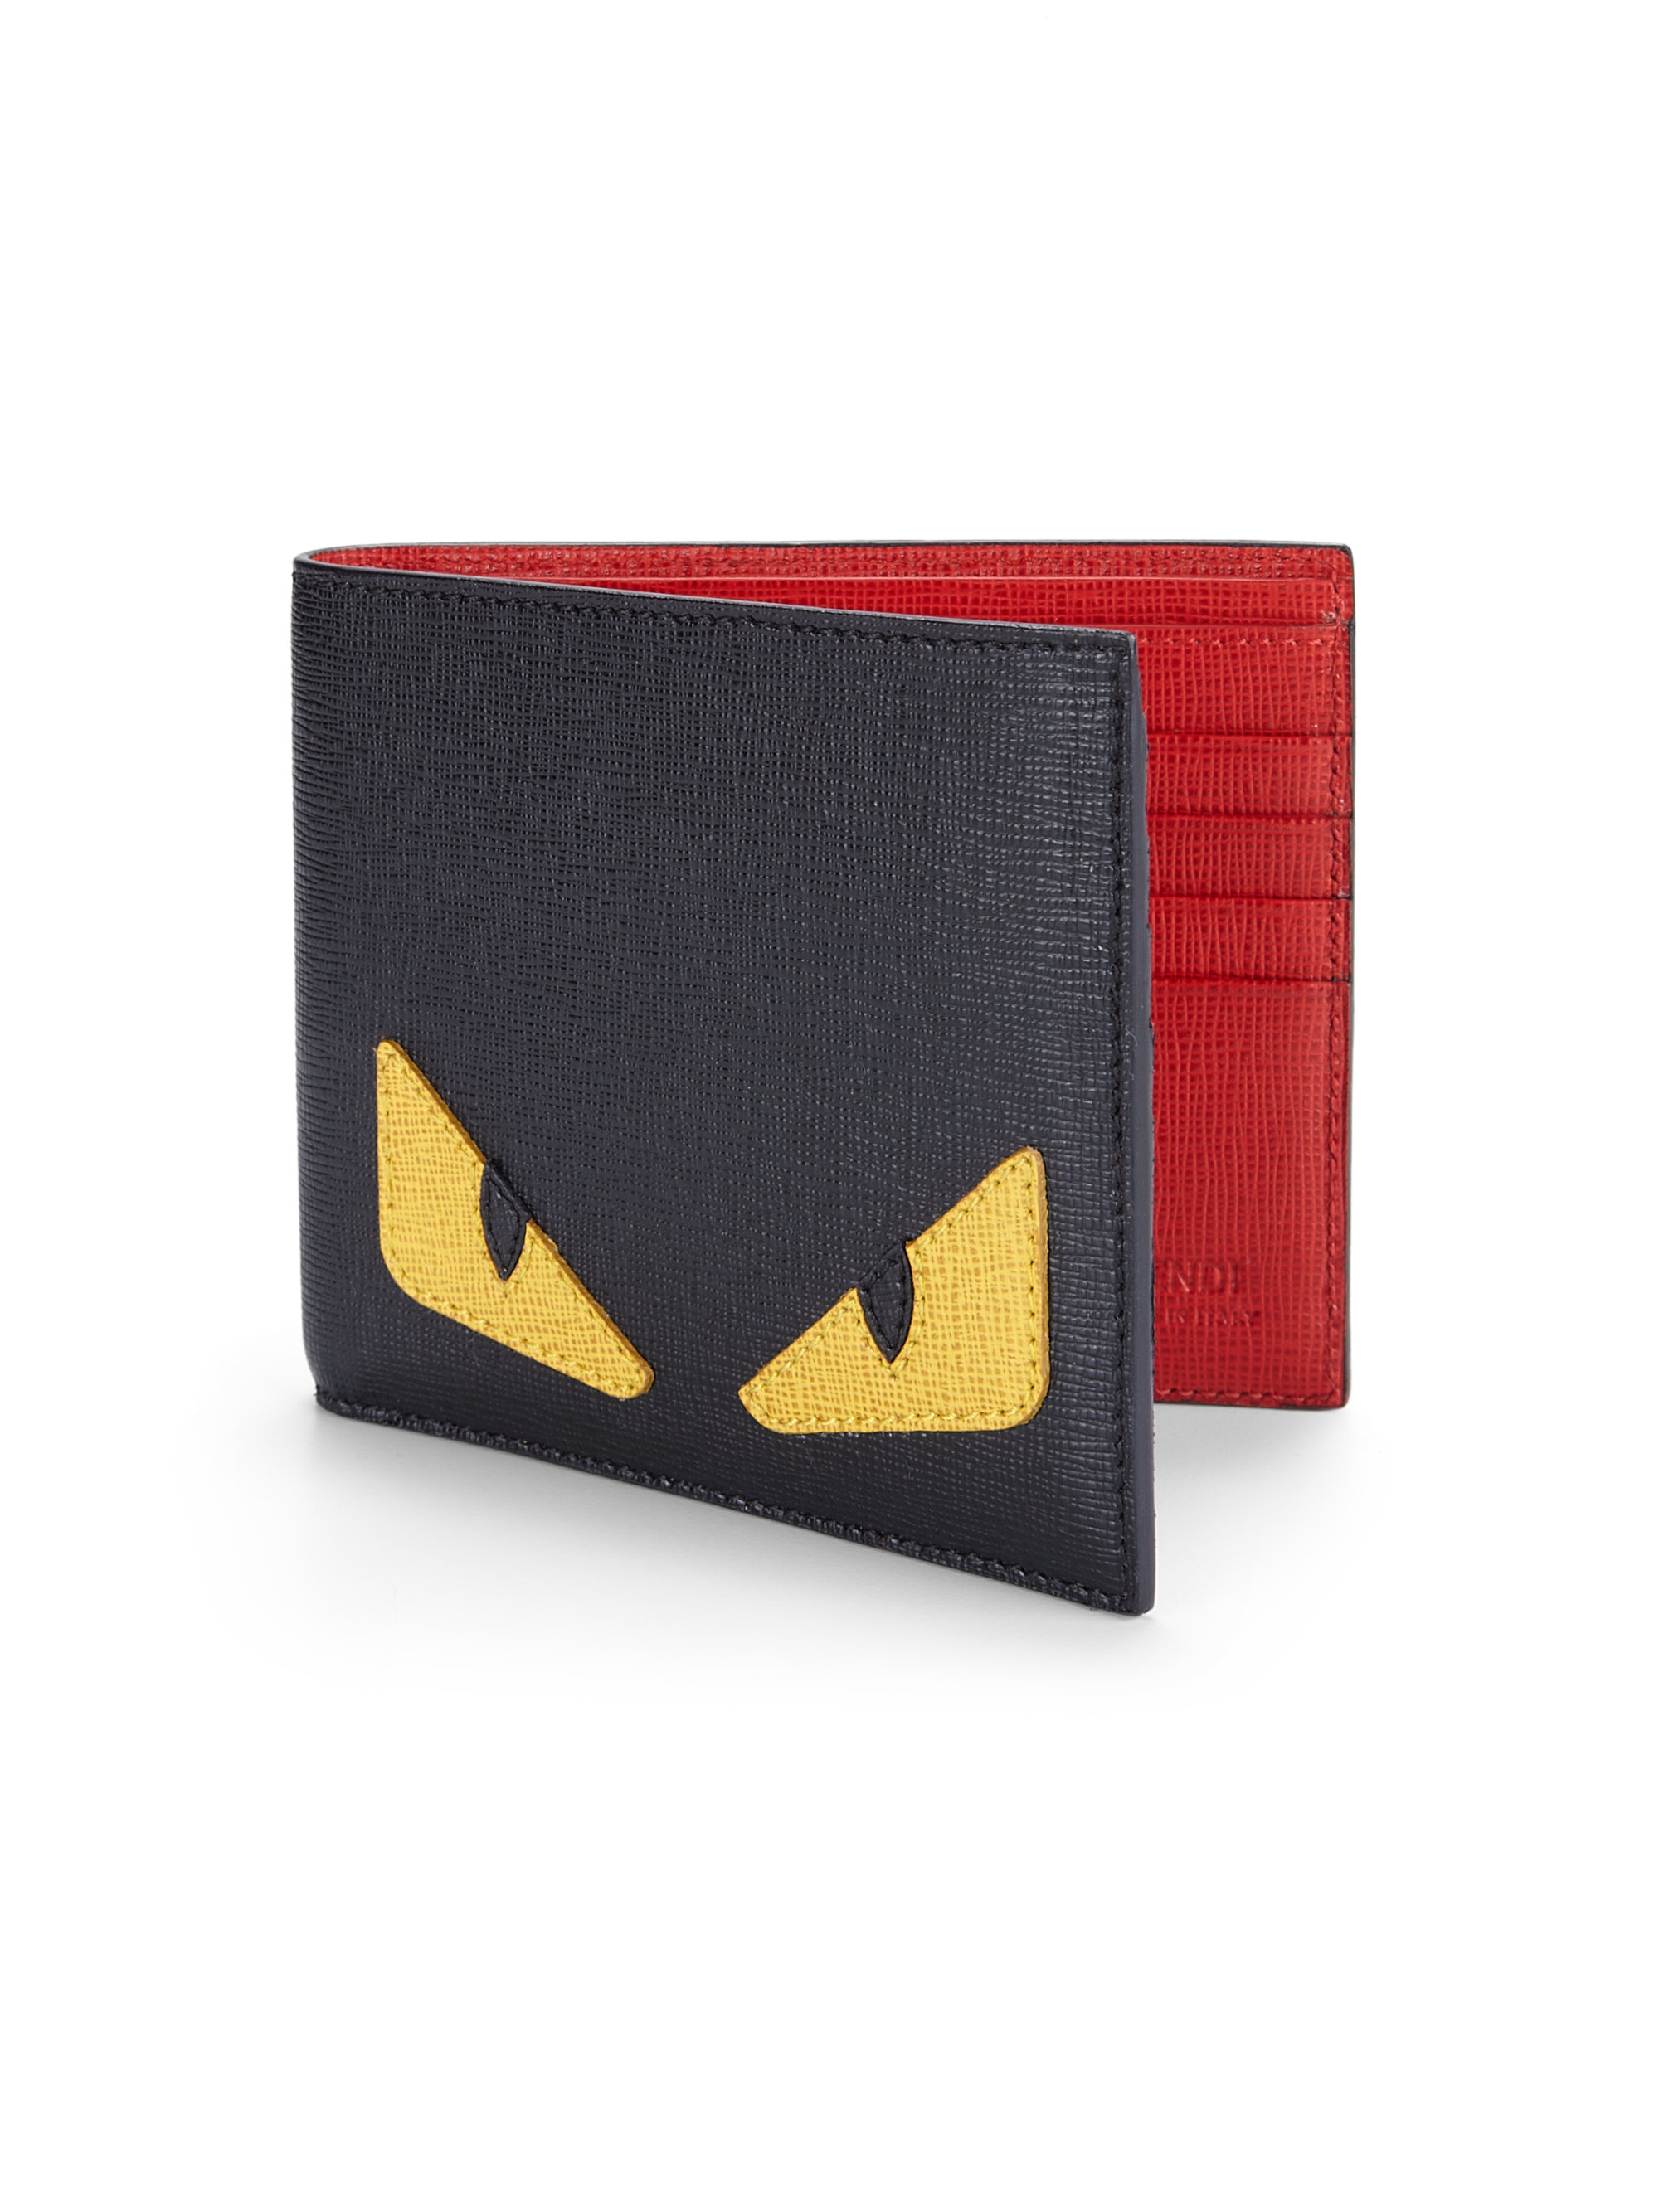 14903866279 Lyst - Fendi Simple Monster Wallet in Red for Men